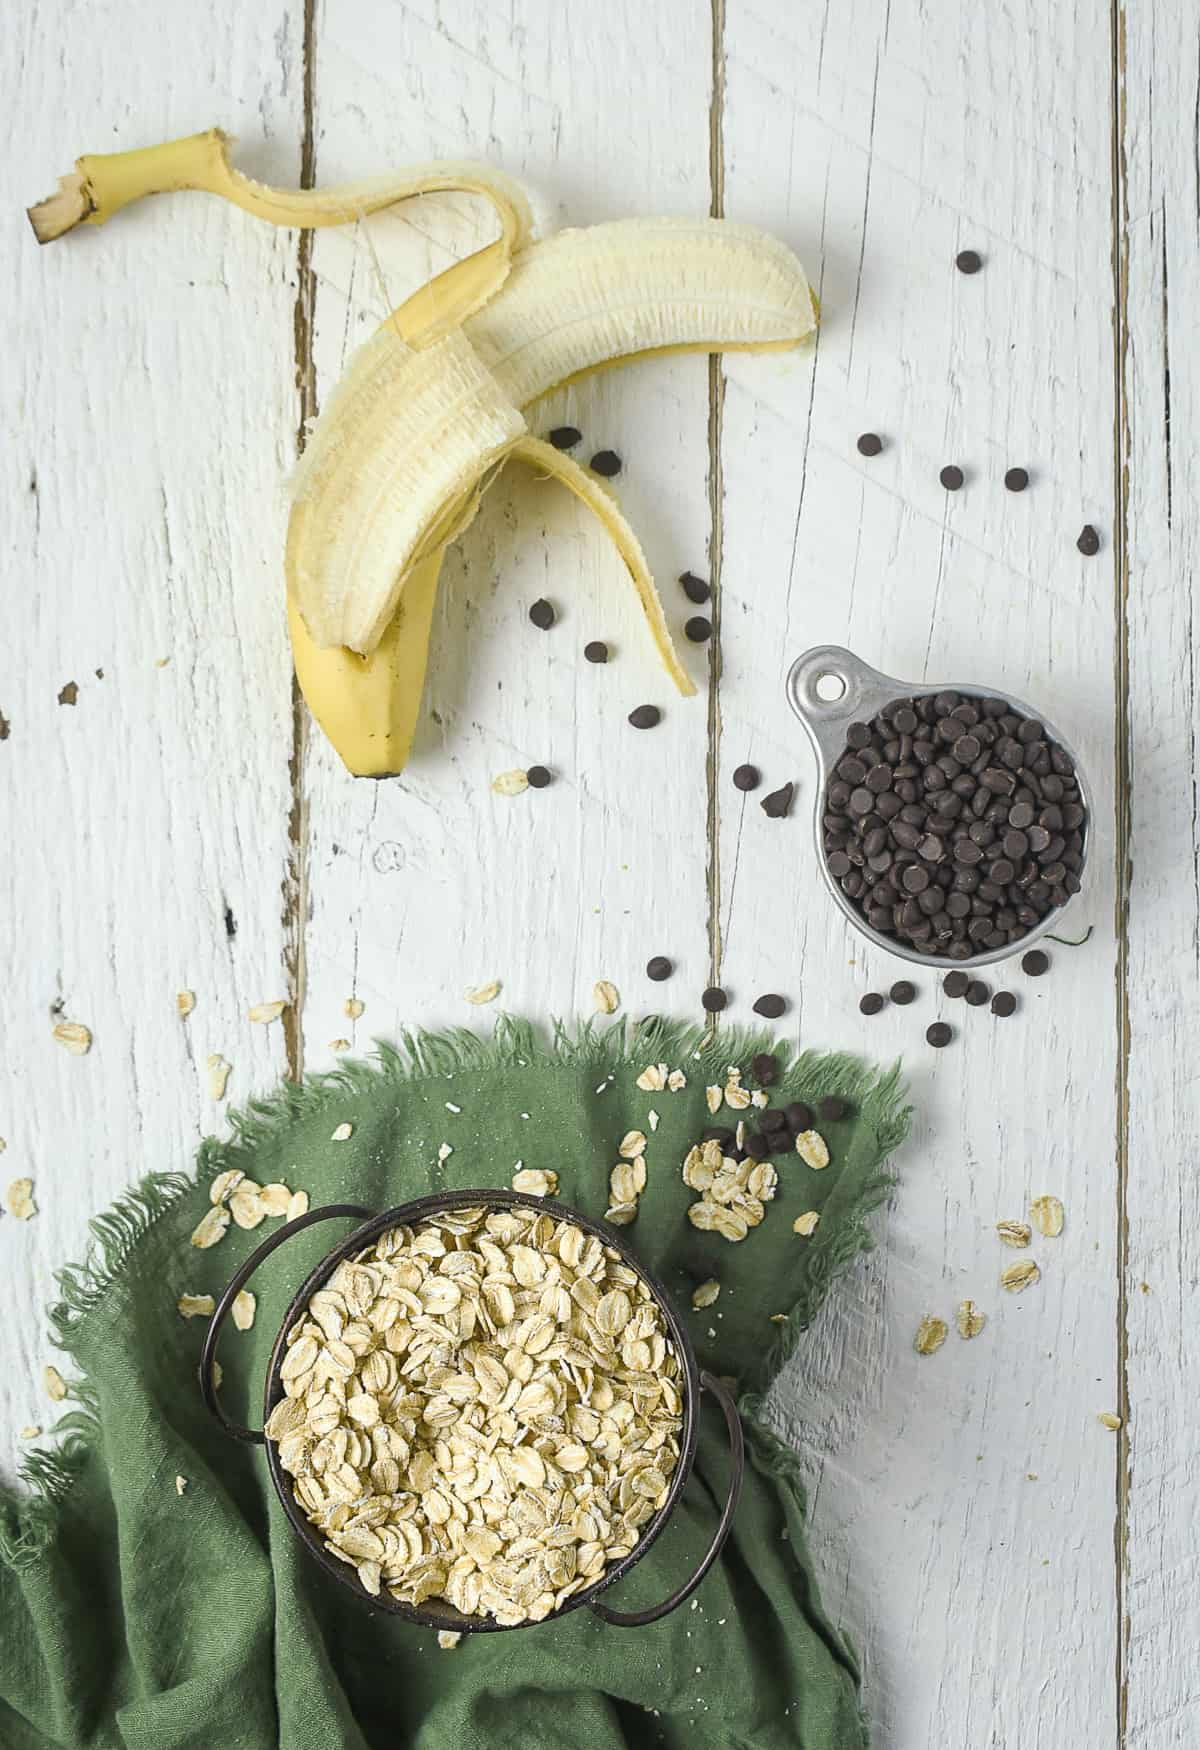 Oats, chocolate chips, and a banana.